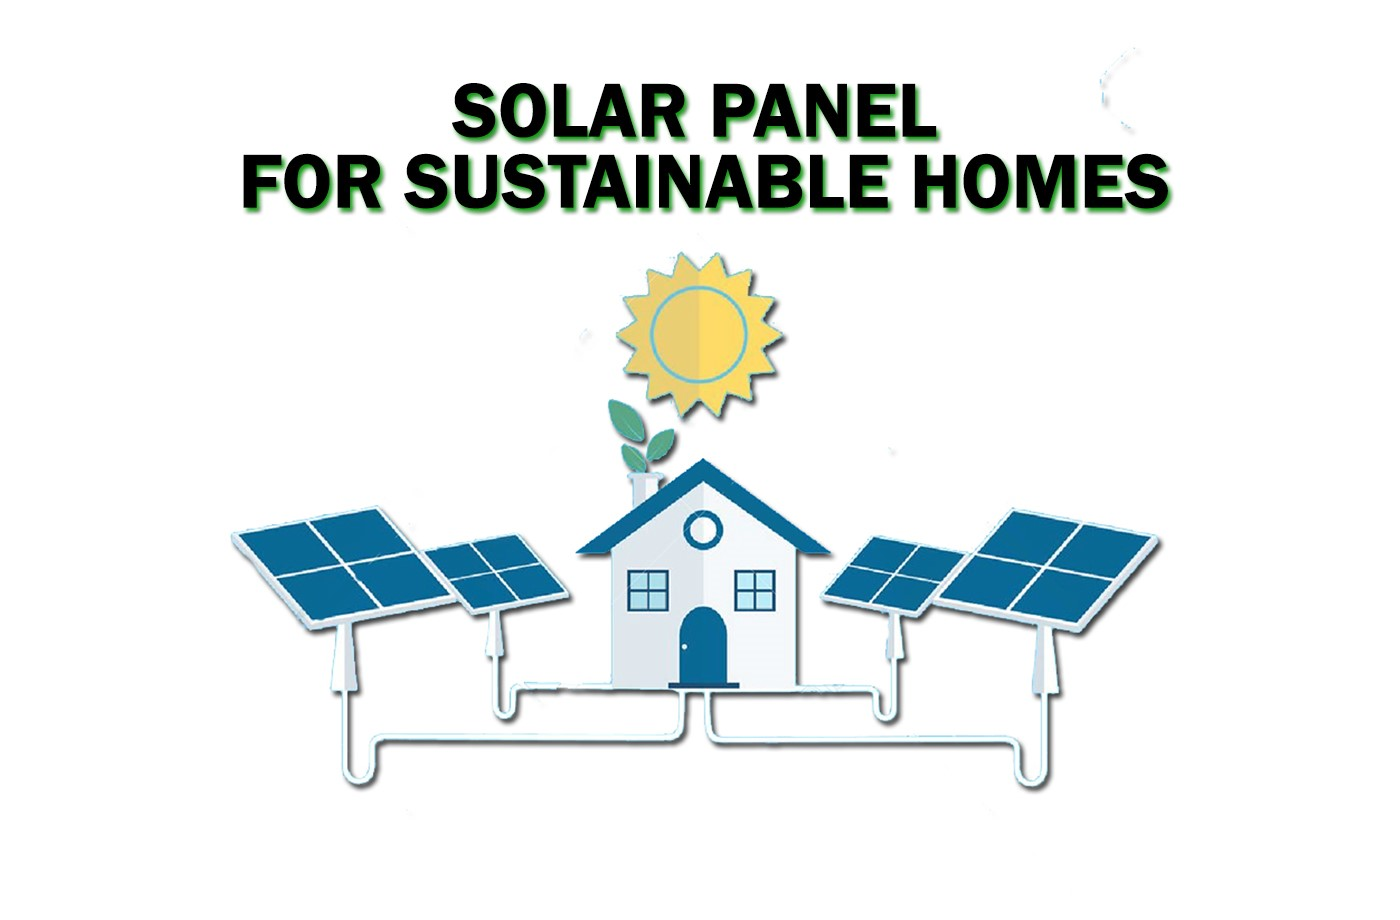 Solar panel is best alternative energy for Sustainable homes